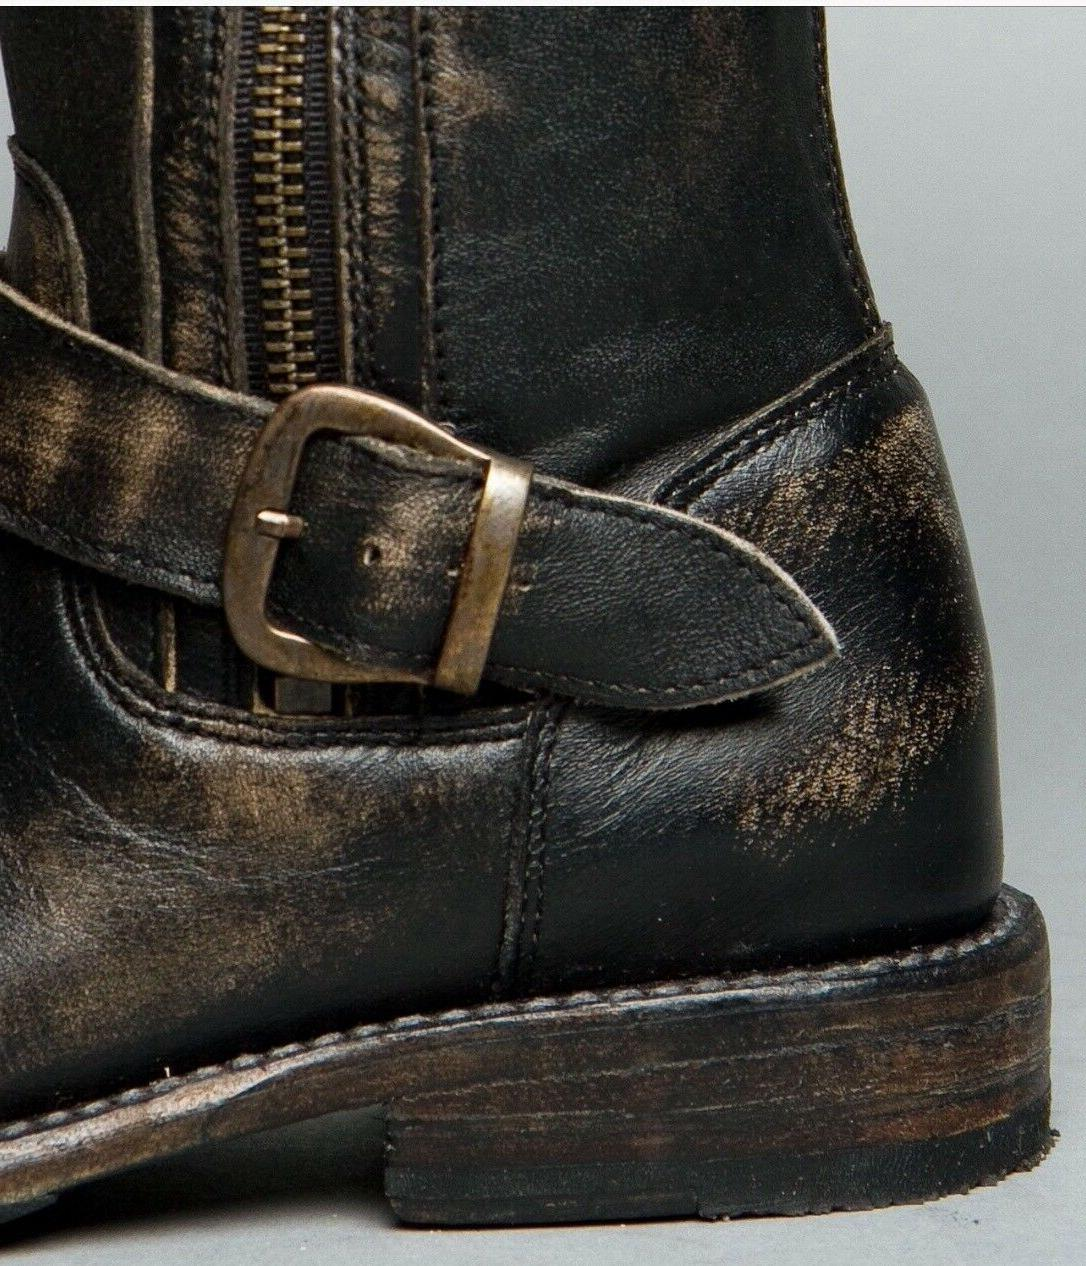 Womens STU Boots HAND WASH Leather Zippers $329